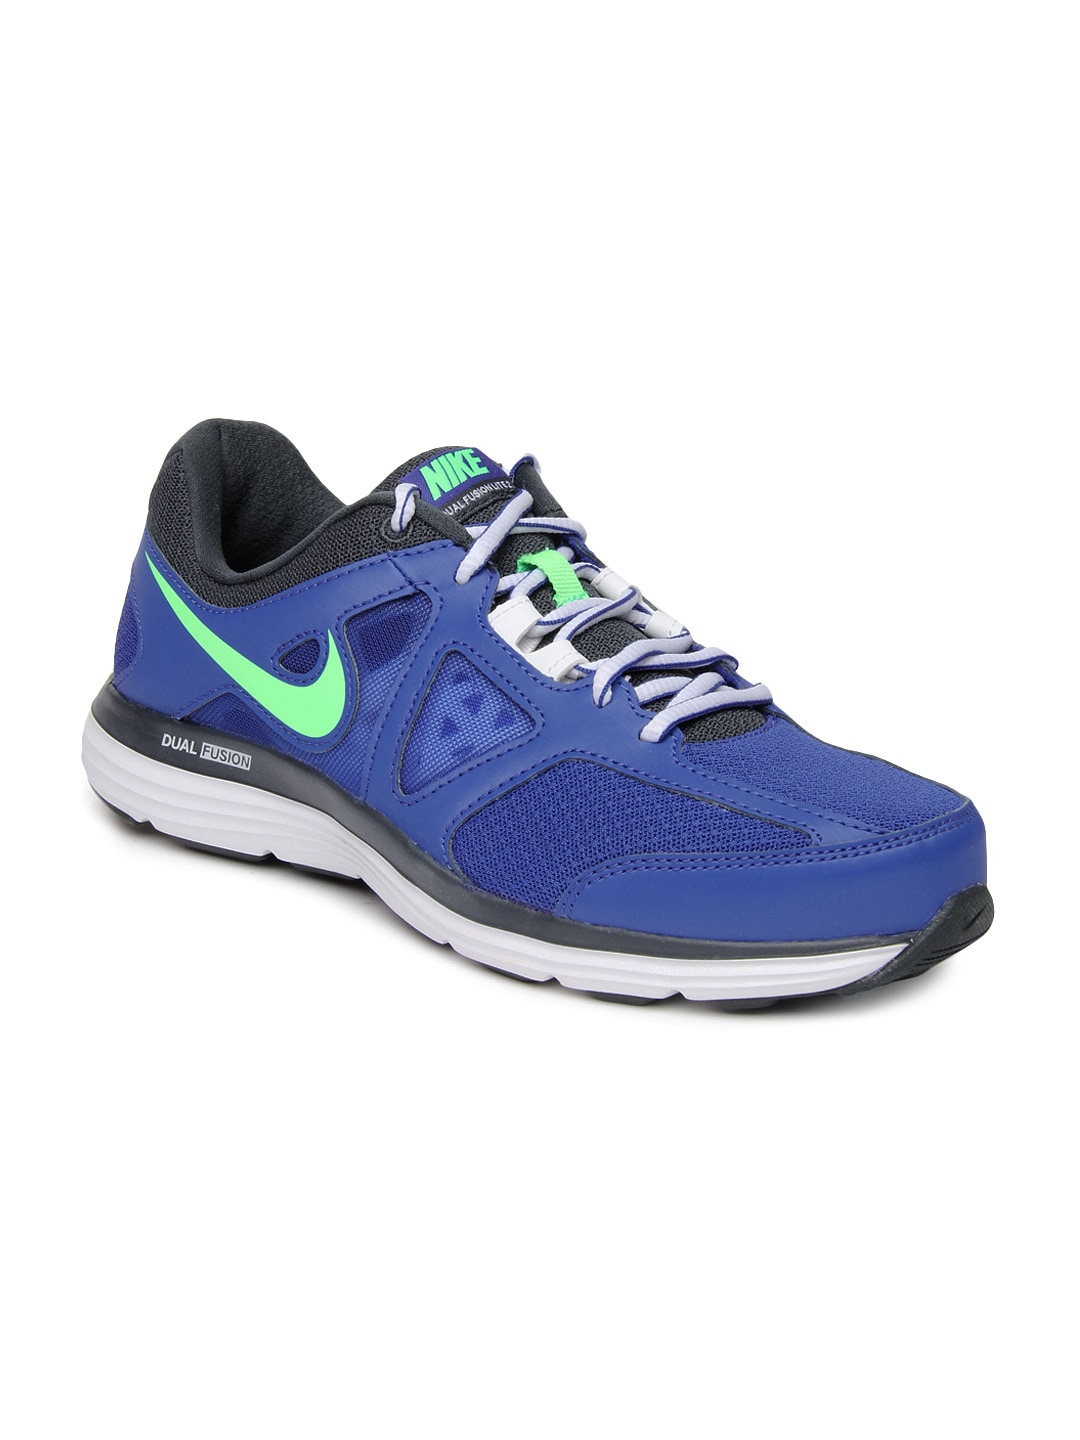 buy nike men blue dual fusion lite 2 msl running shoes 634 footwear for men 613083. Black Bedroom Furniture Sets. Home Design Ideas